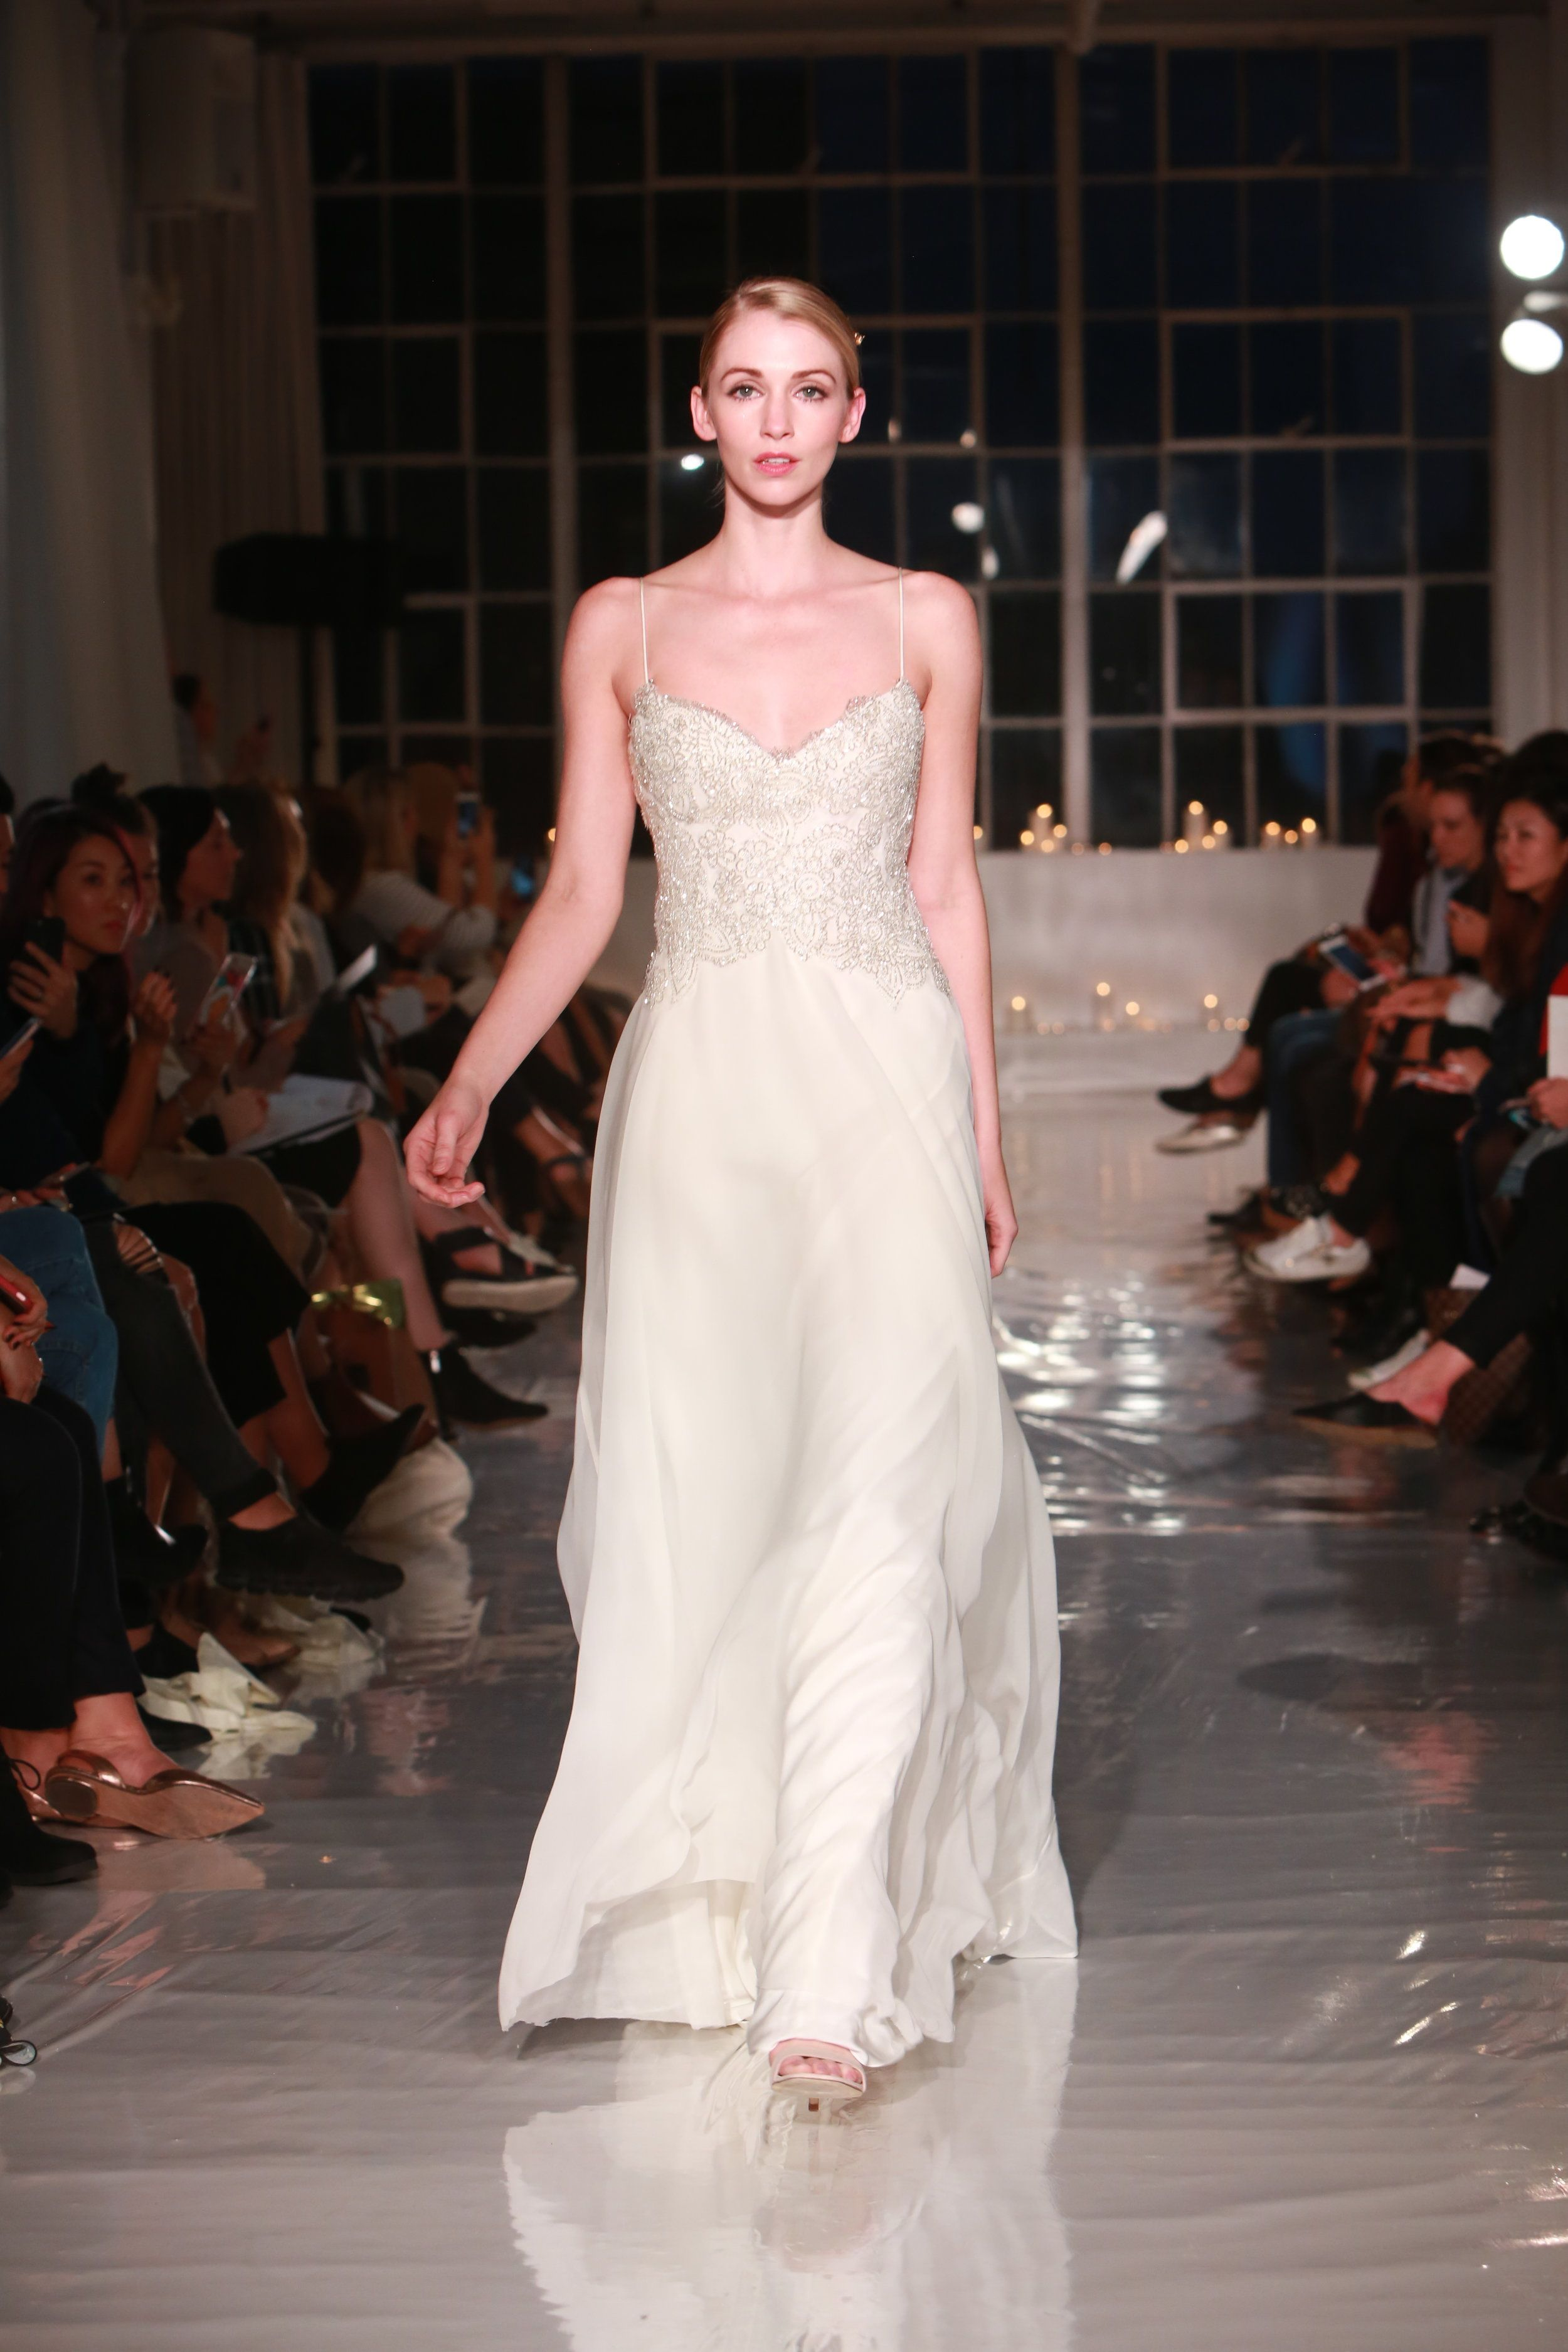 Couture wedding dresses london  London London silk chiffon and delicately handbeaded bodice wedding